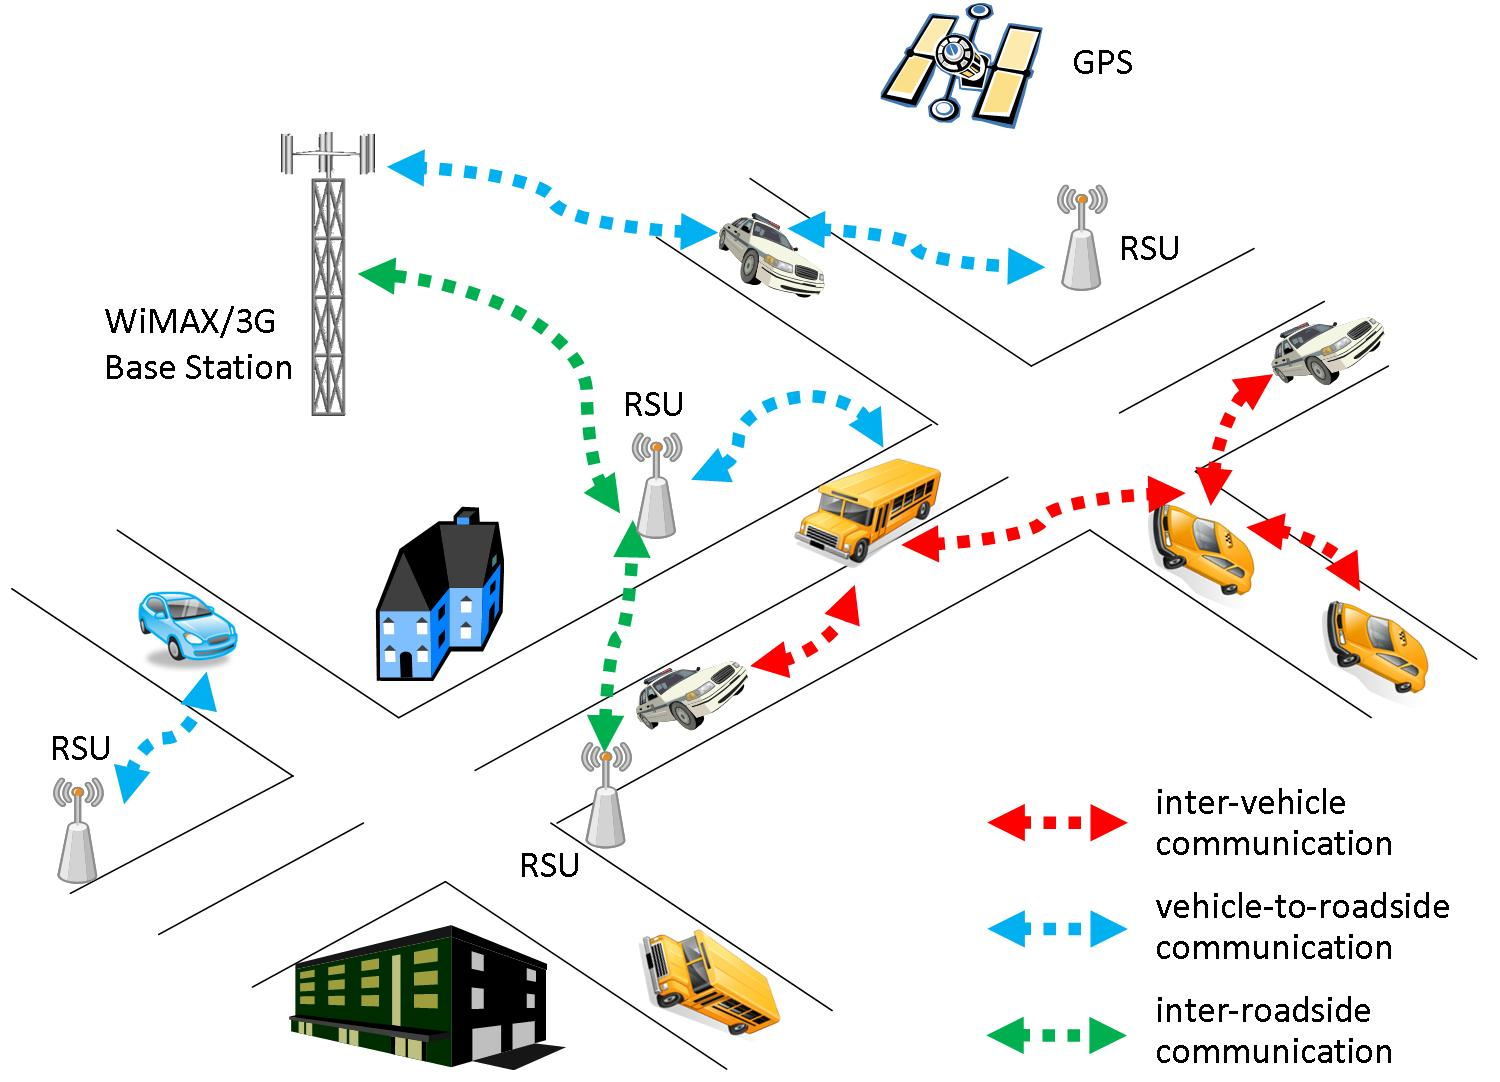 thesis on vehicular ad hoc network Chapter 1 introduction to vehicular ad hoc networks the cost reduction and fast evolution experienced by wireless communication tech-nologies have.